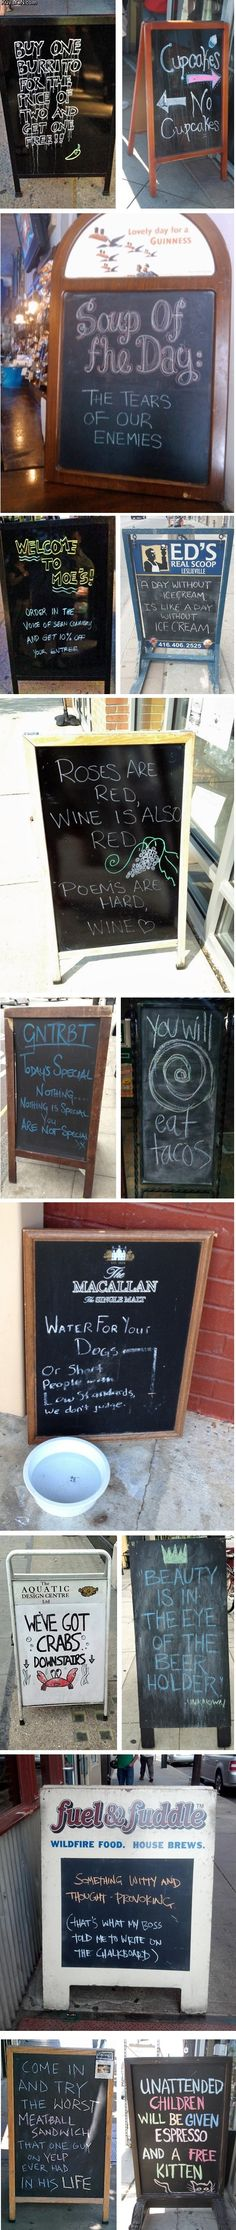 I like the second to last one about the yelp review